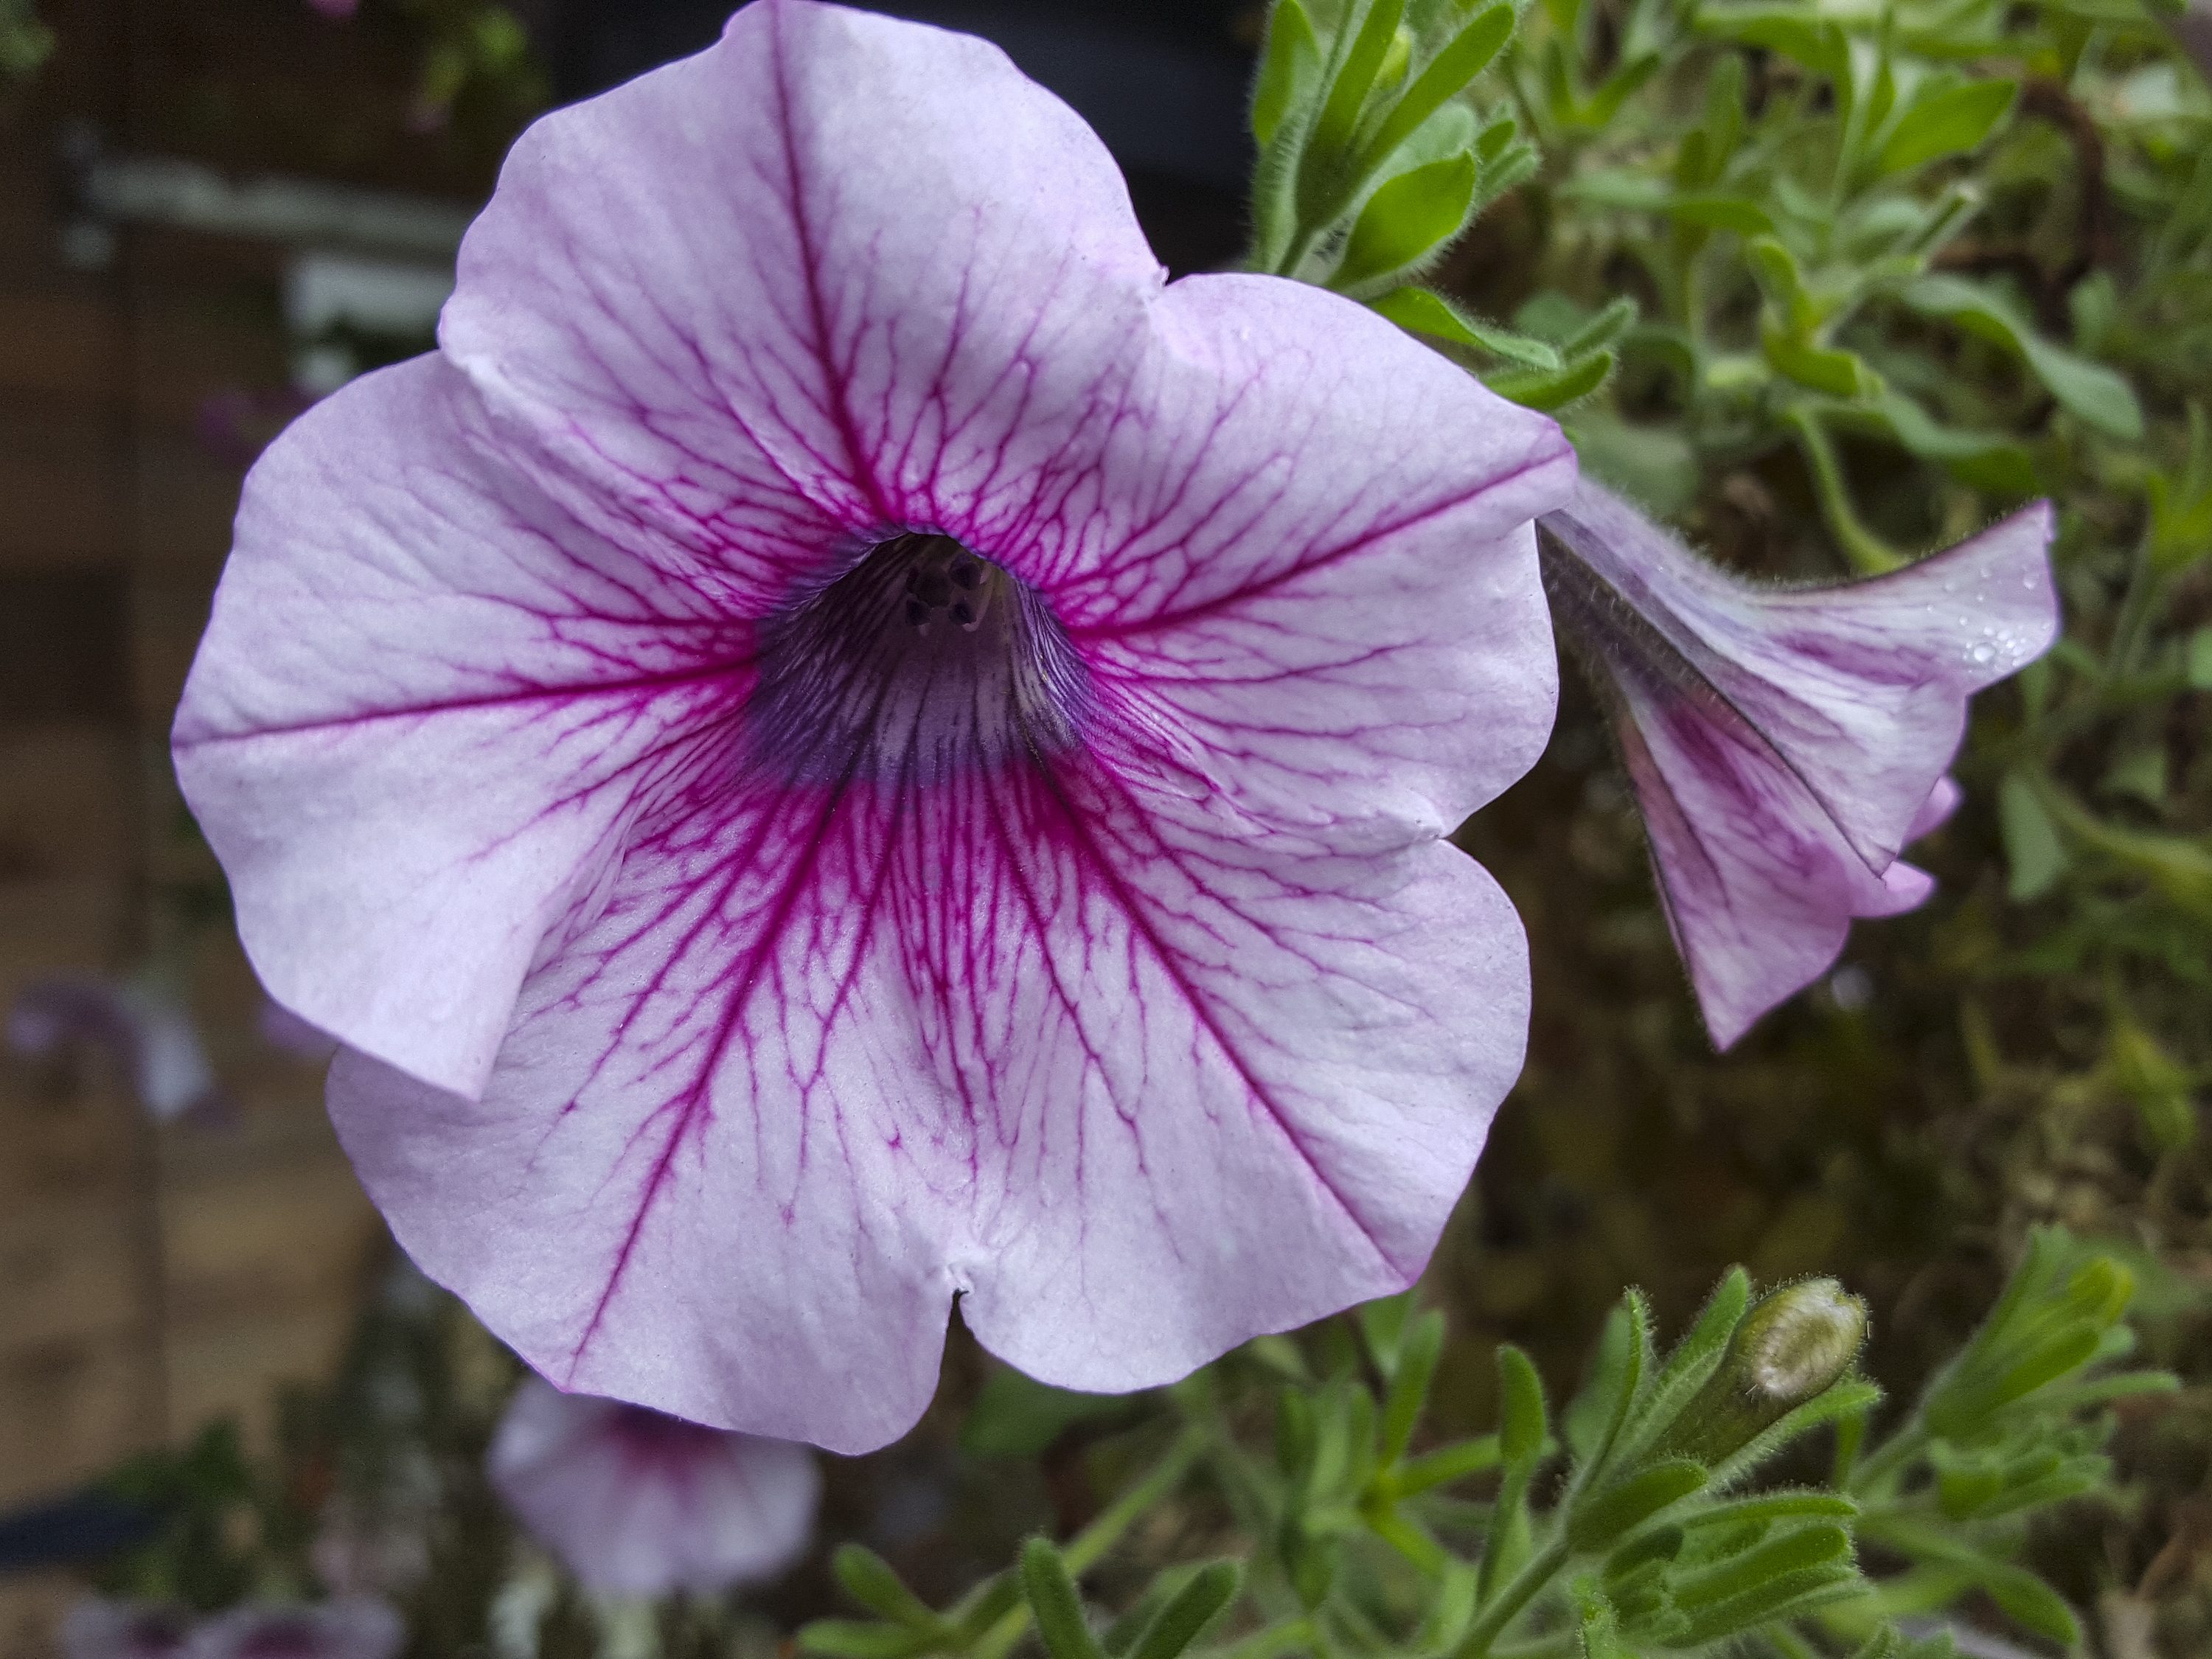 No Petunias Were Harmed In >> What Can I Spray On Petunias So Bugs Do Not Eat Them Home Guides